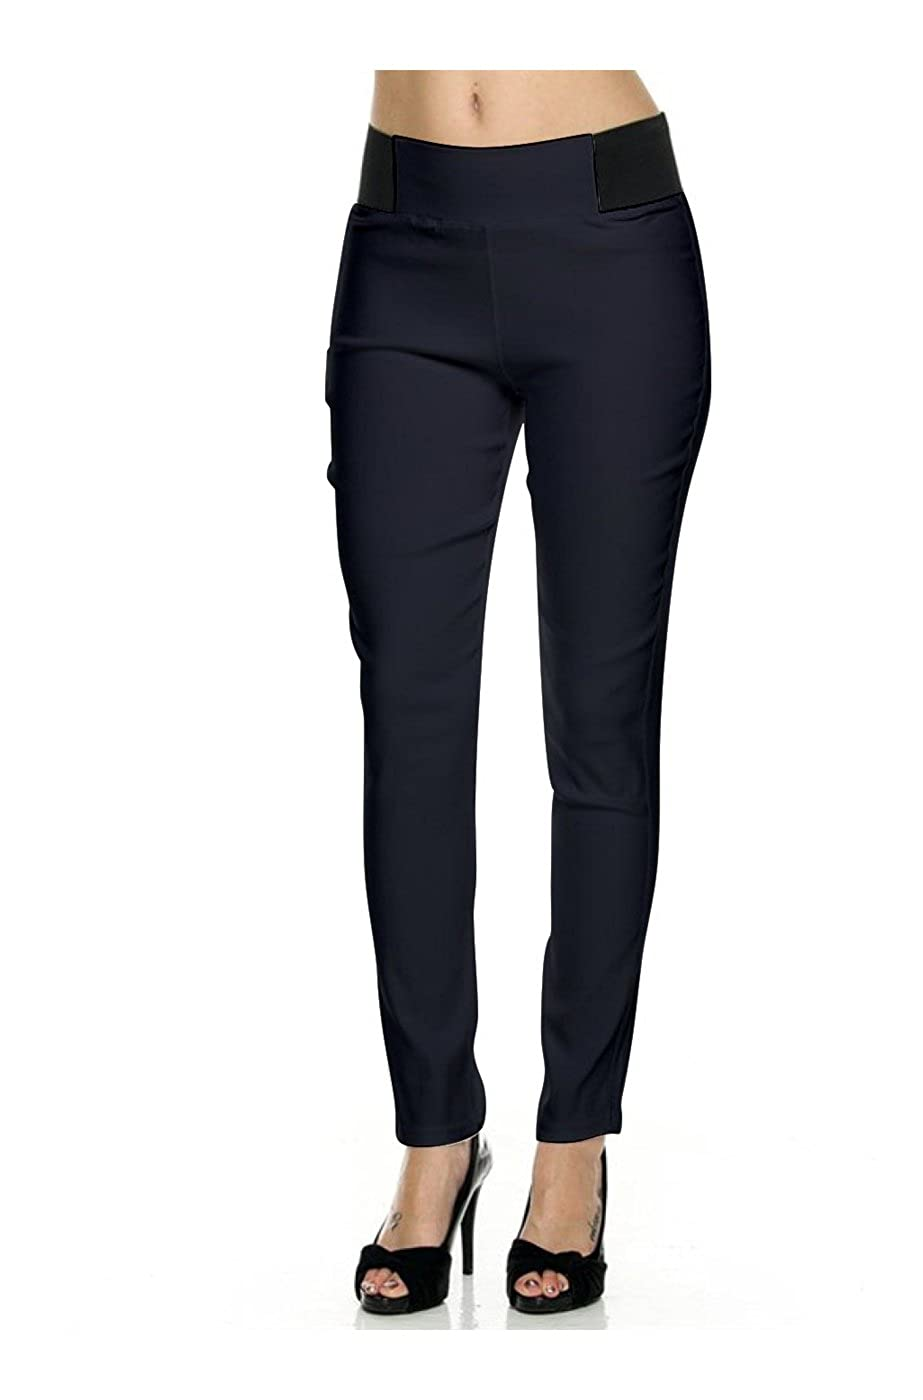 2LUV Women's Stretch Skinny Dress Pants